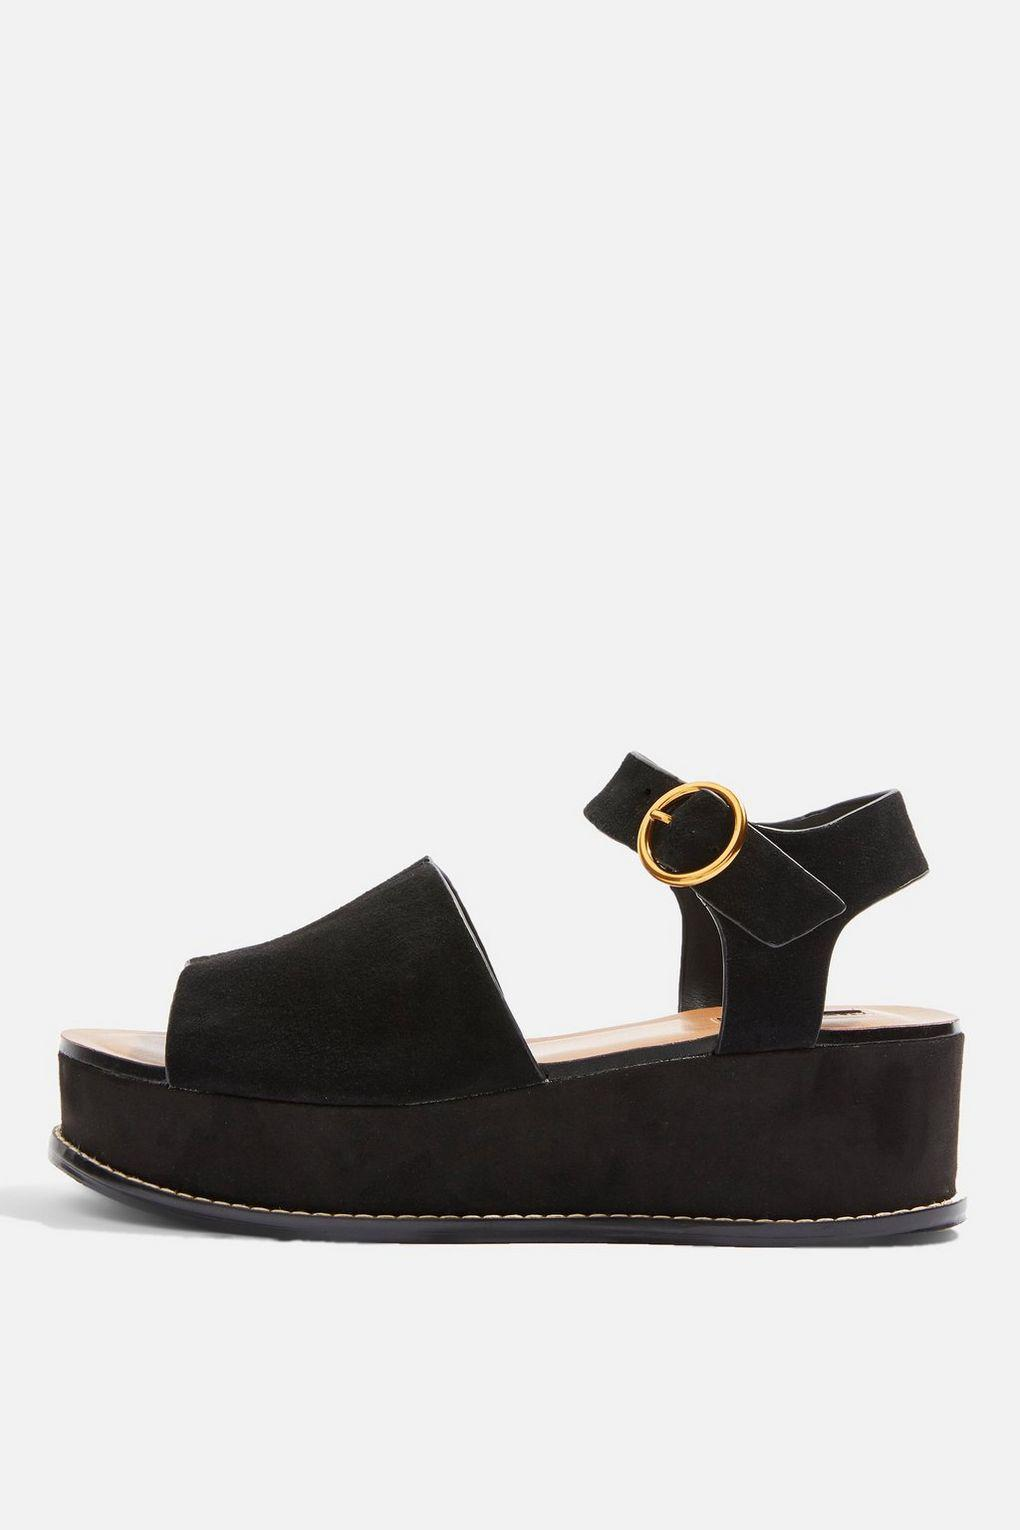 33582b9a5869 Lyst - TOPSHOP Wow Platform Wedge Sandals in Black